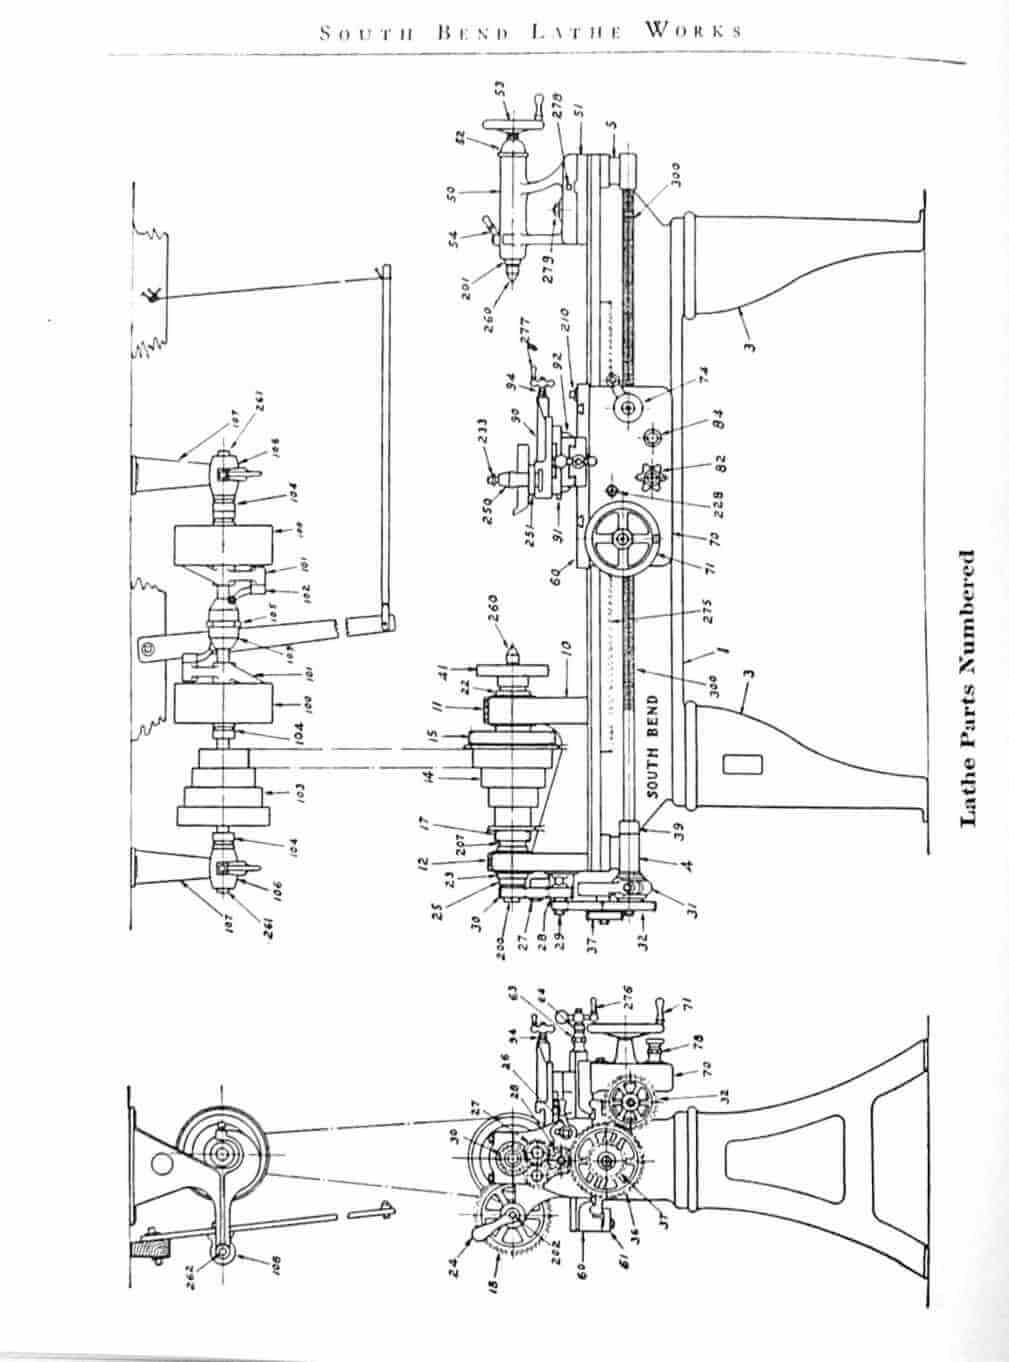 South Bend Lathe Parts Diagram Wire Data Schema Analog Phase Detector Circuit Measuringandtestcircuit 9 Quot 24 Revised Early Vintage Lathes Manualsonline